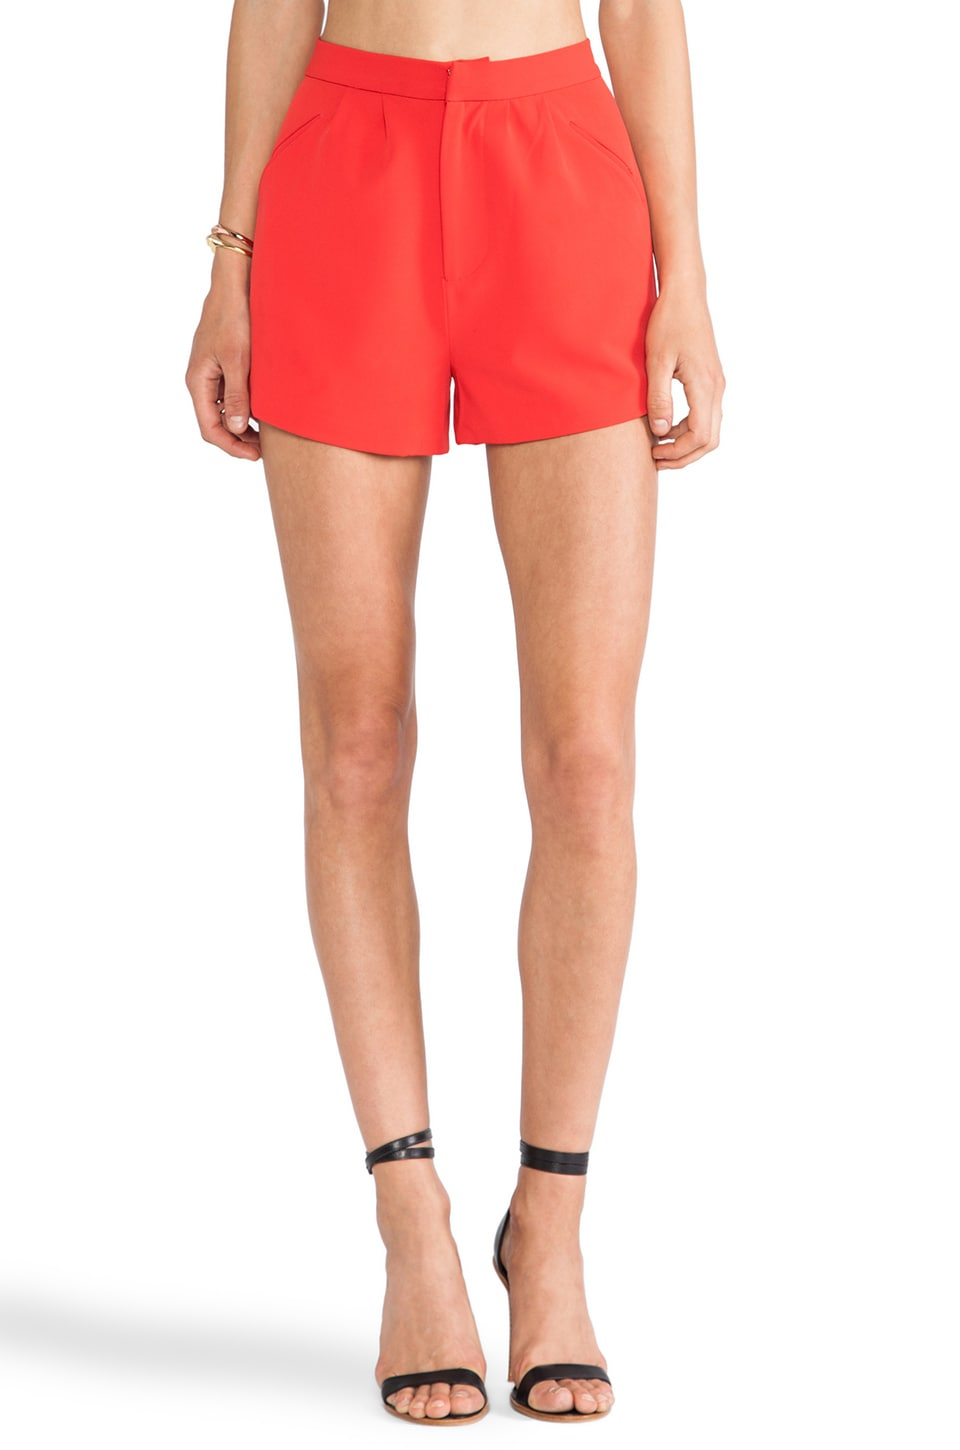 Lovers + Friends Kind Of Love Short in Poppy